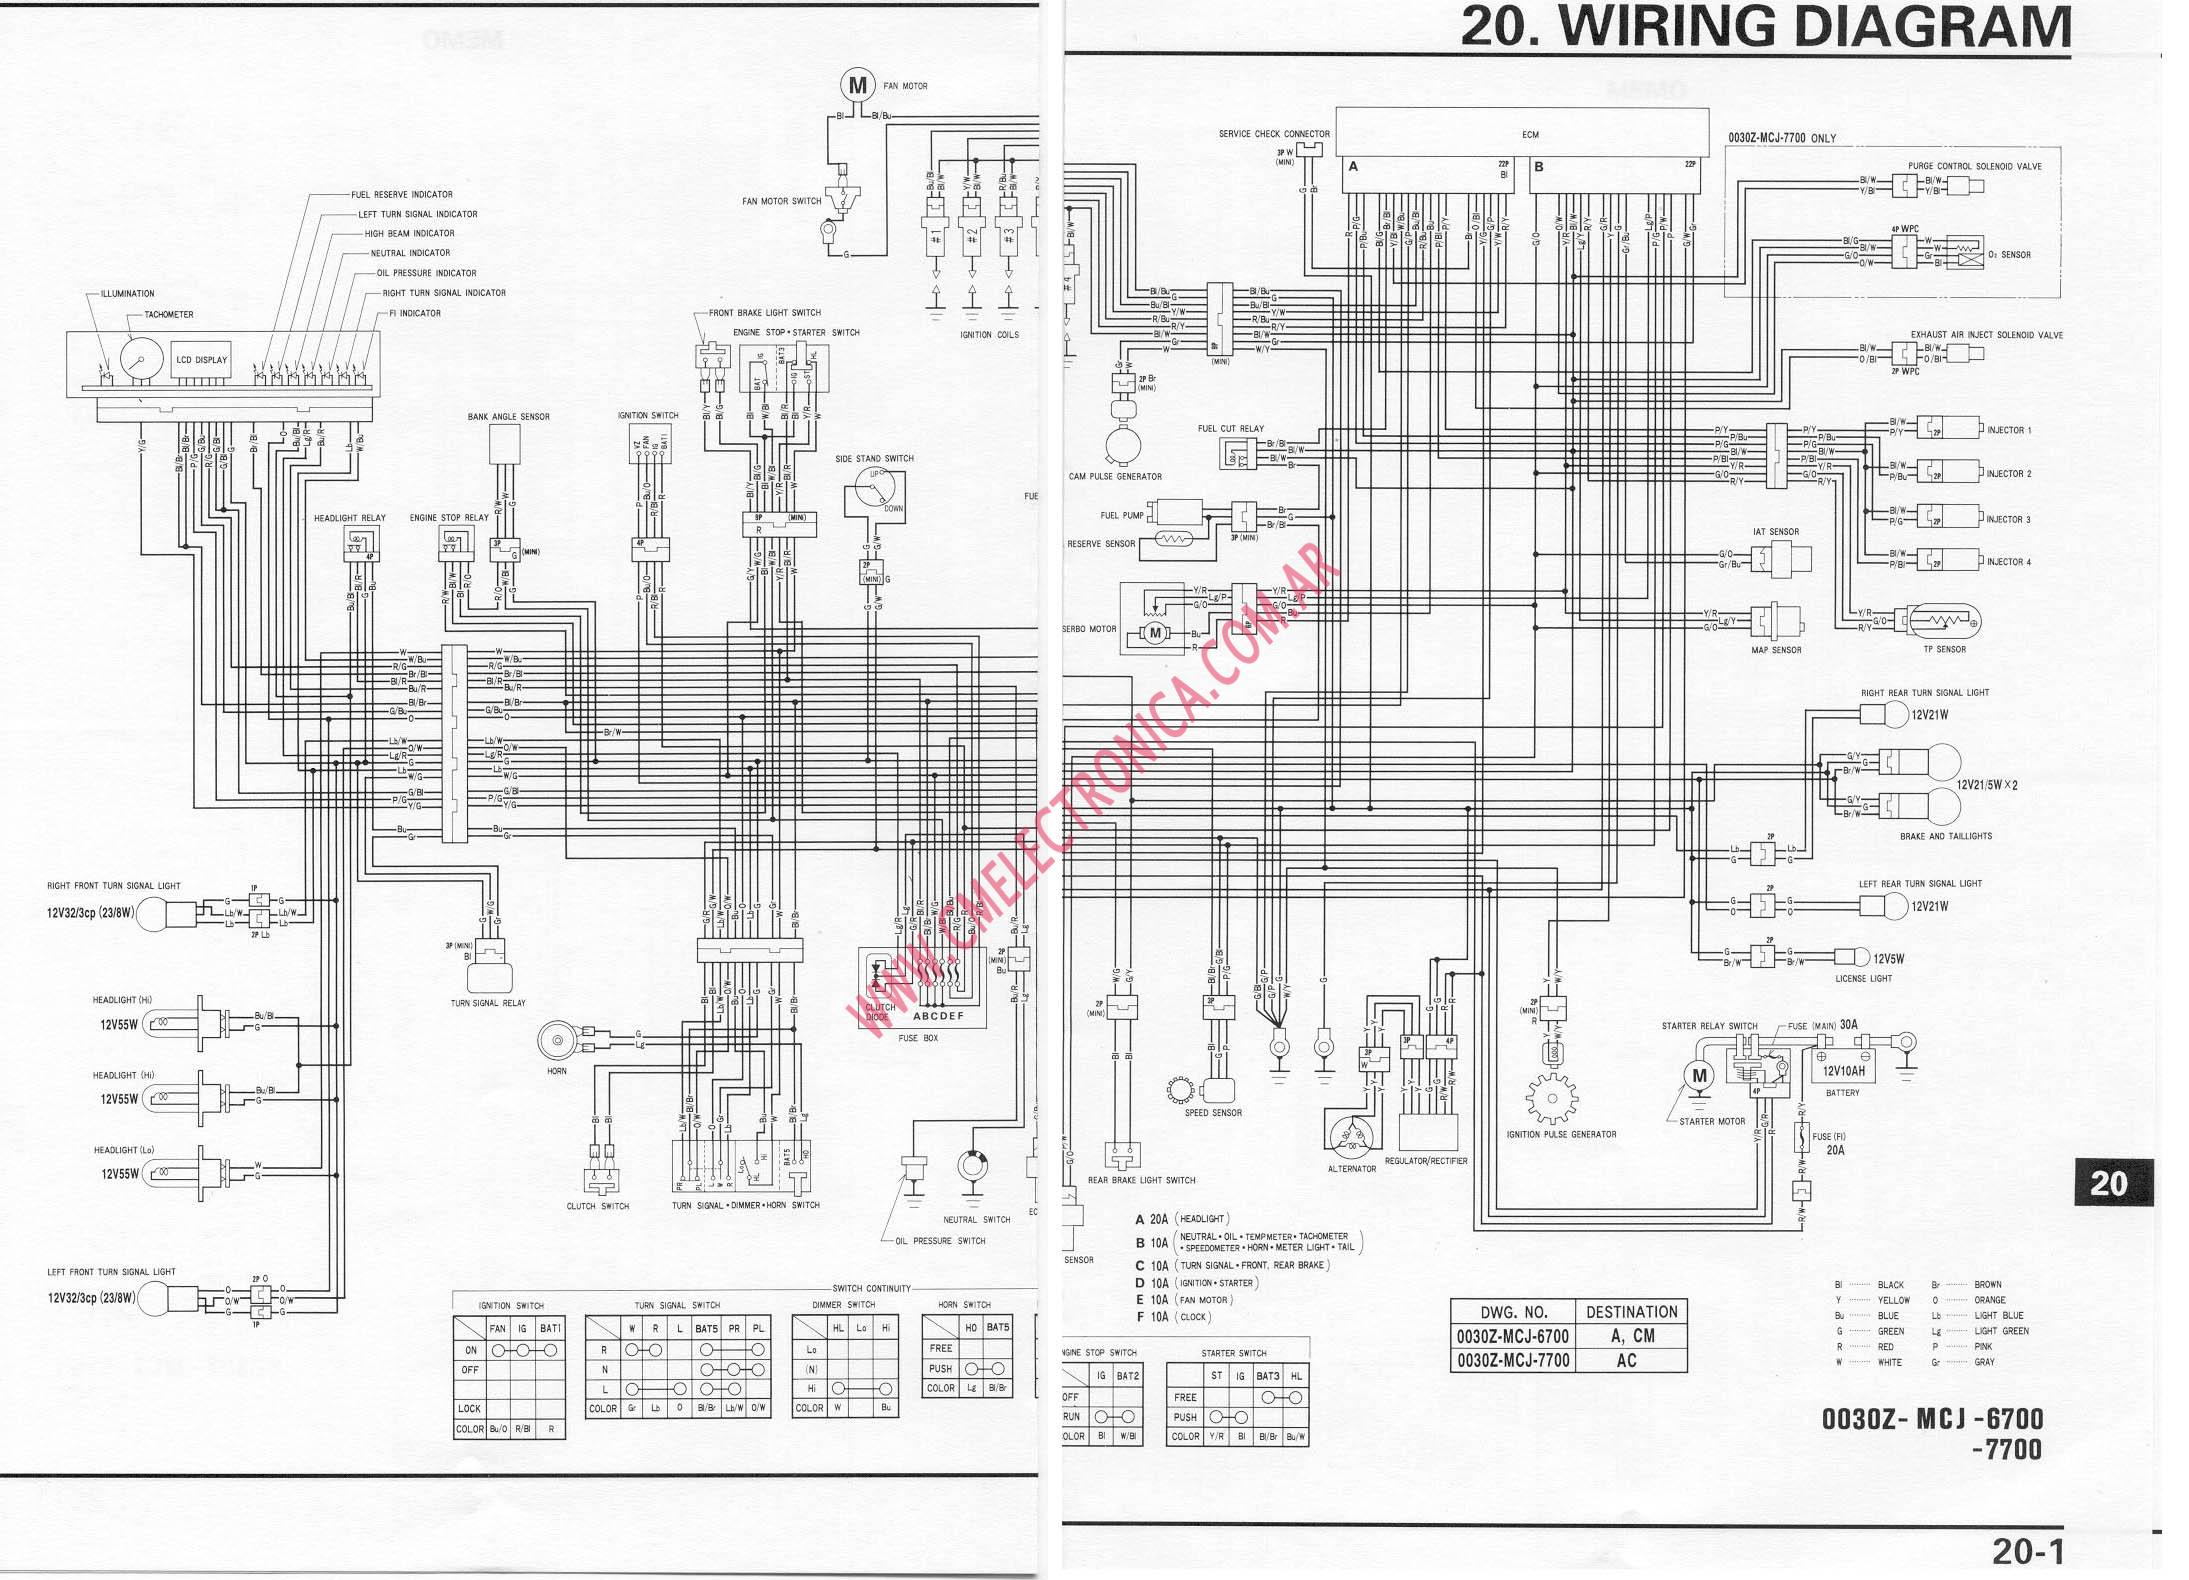 Cbr900rr Wiring Diagram Third Level Honda Xr650r Simple 1999 Cbr 900rr